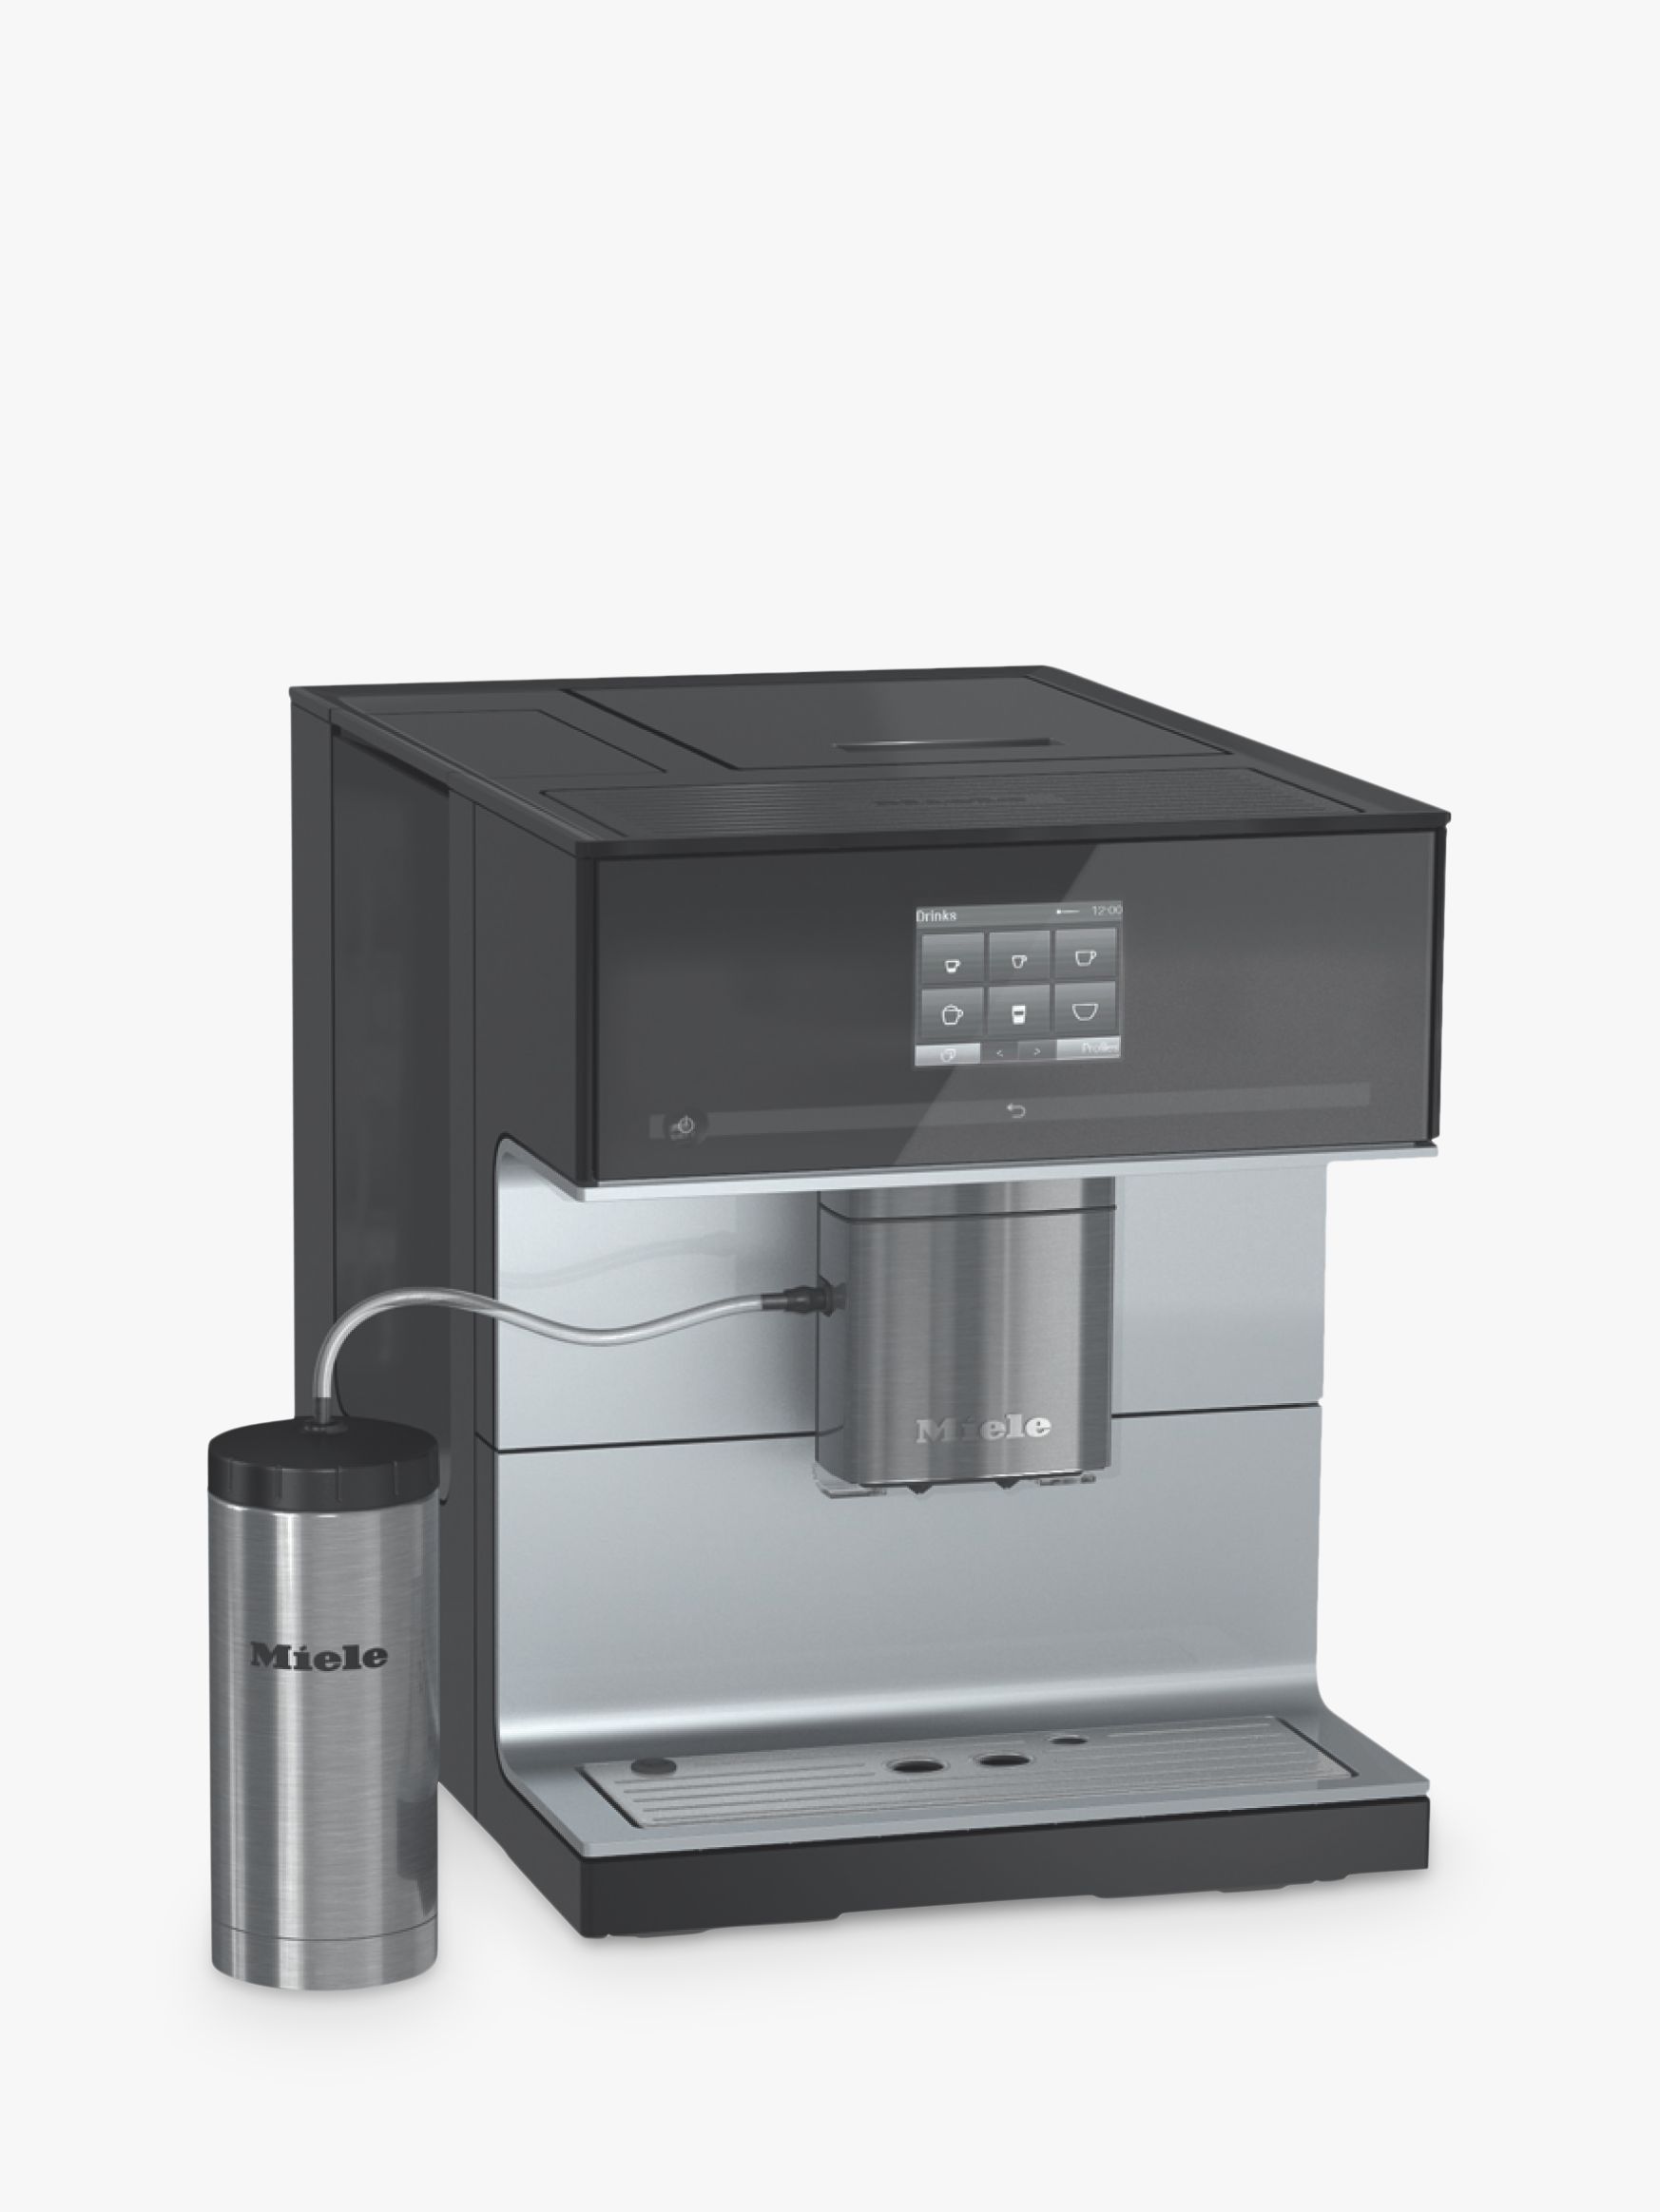 John Lewis Hob Coffee Maker : Buy Miele CM7300 Bean-to-Cup Coffee Machine, Black John Lewis